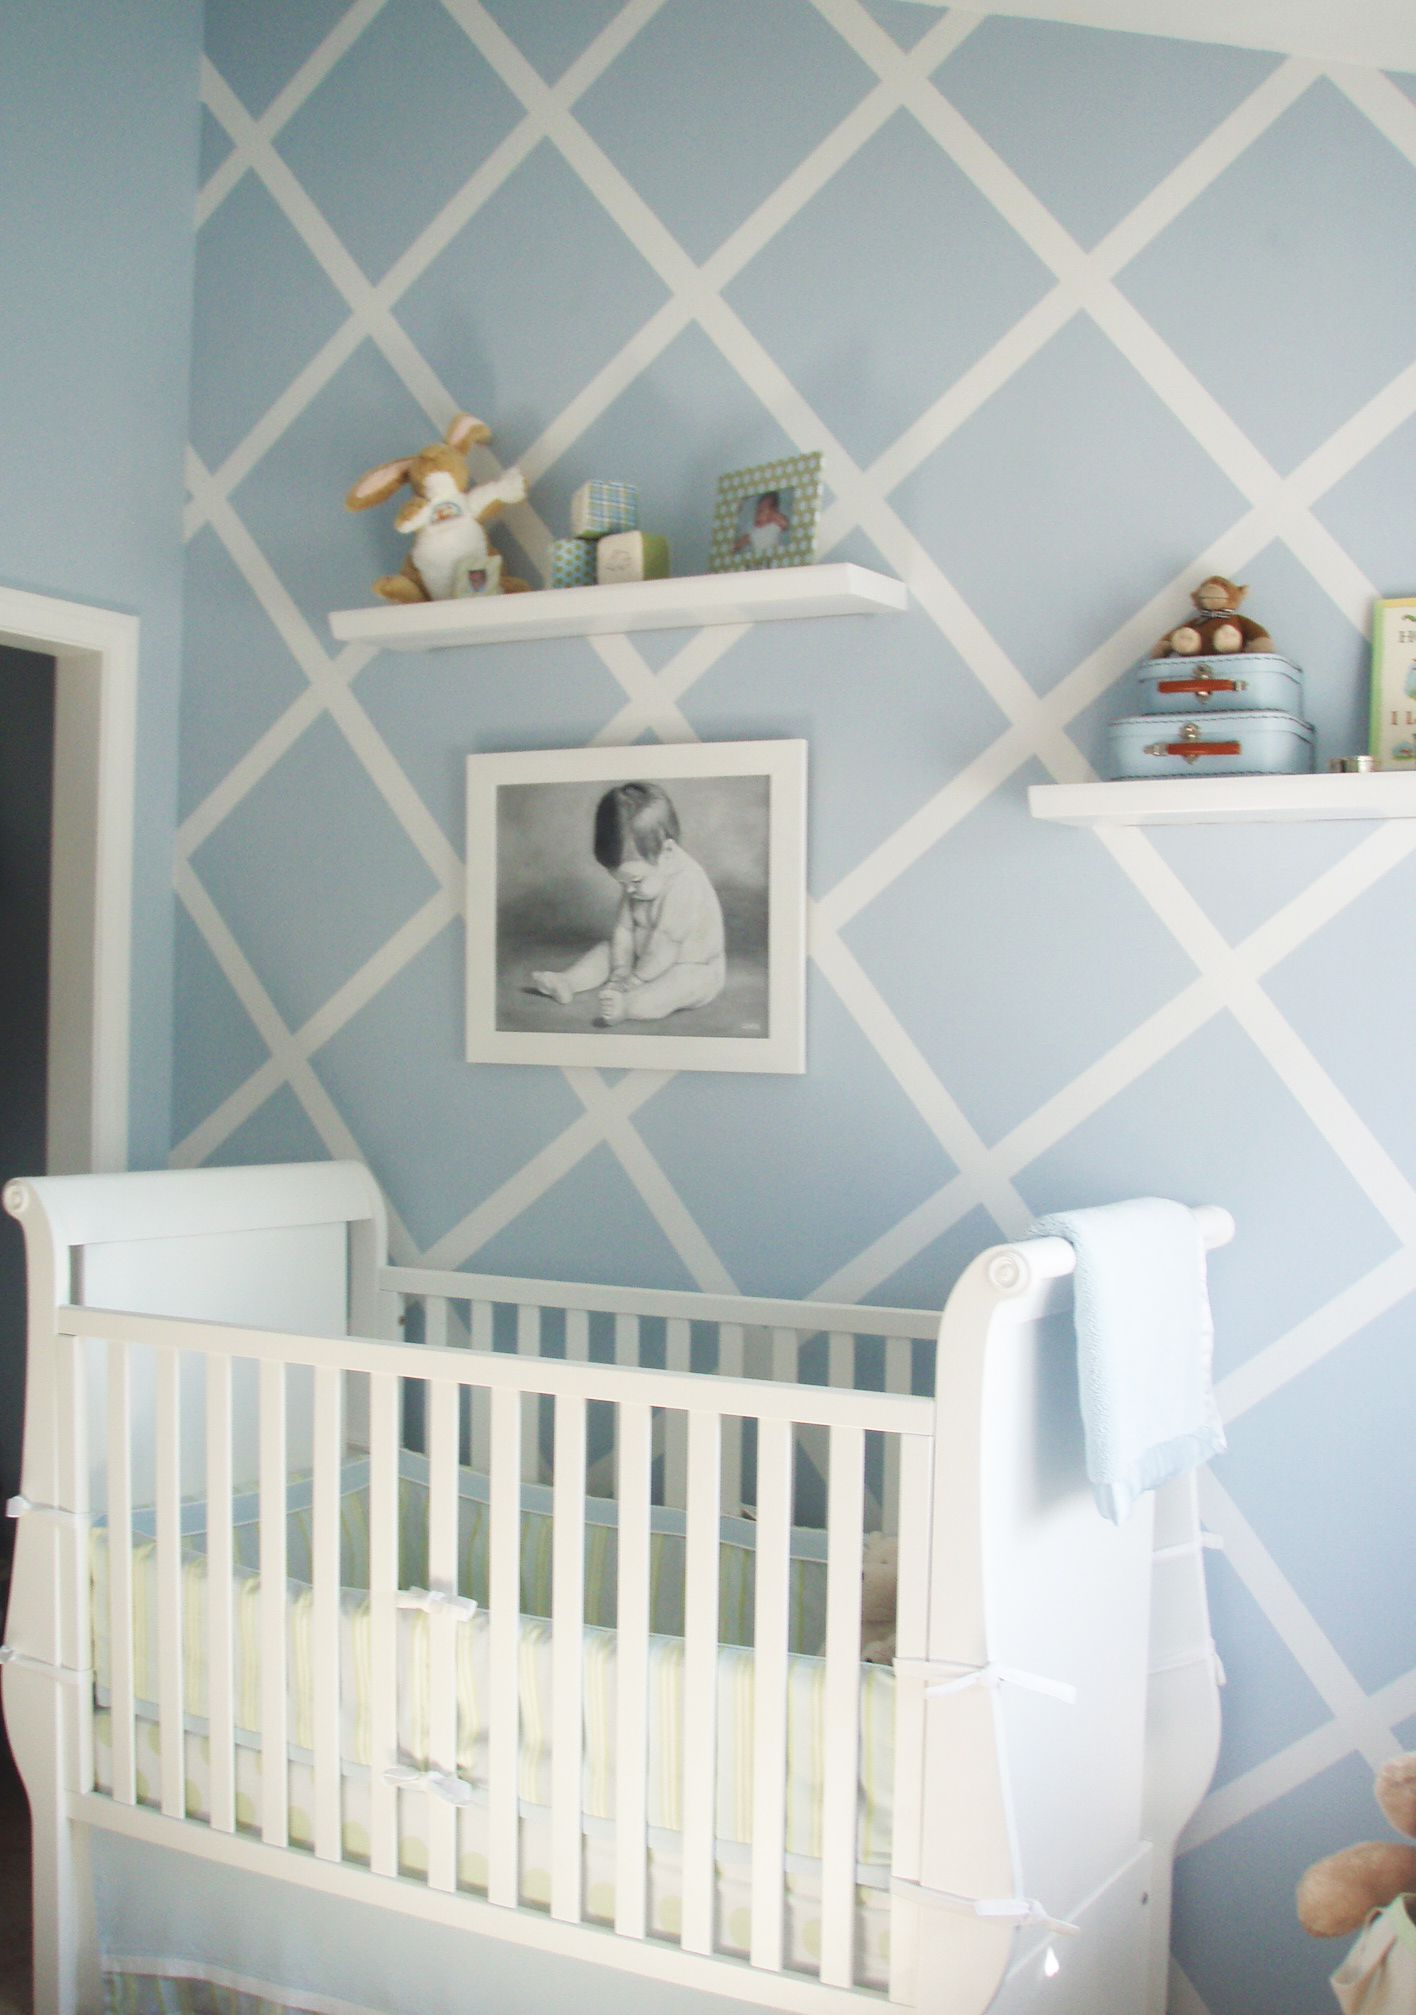 This Was My Favorite Nursery When I Pregnant With Tea Unfortunately Her Room Looked Nothing Like Think It S Nice For A Boy Or One Day